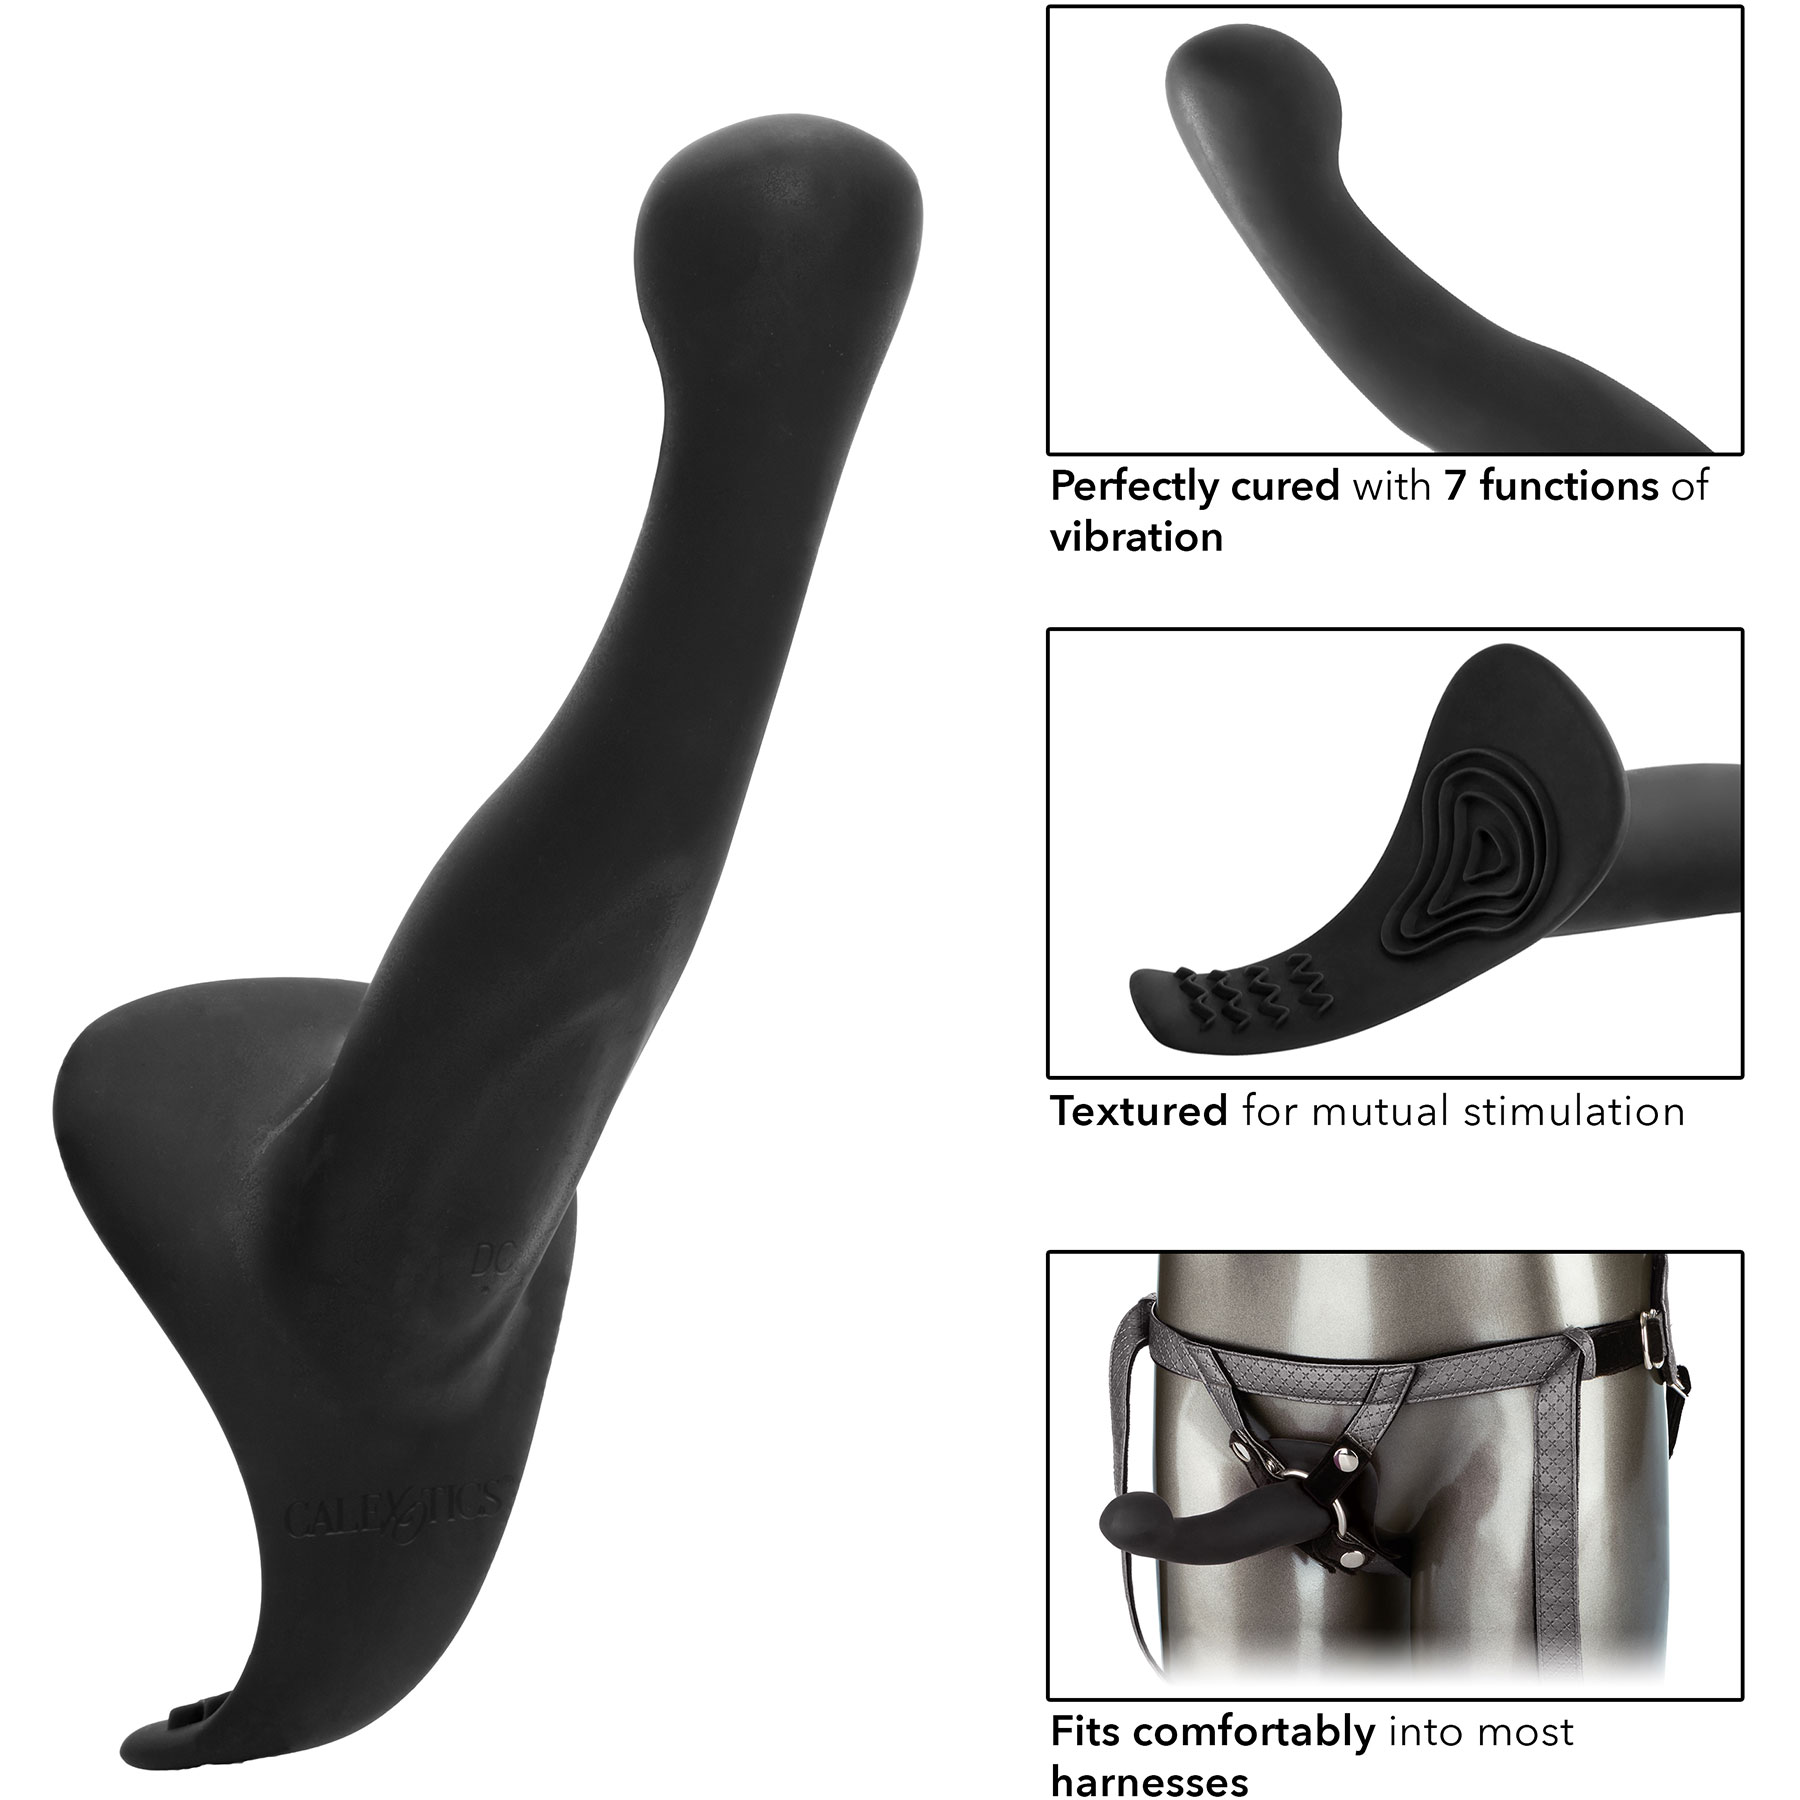 Her Royal Harness The Royal Vibrating Set With Vibrating Silicone Probe - More Features